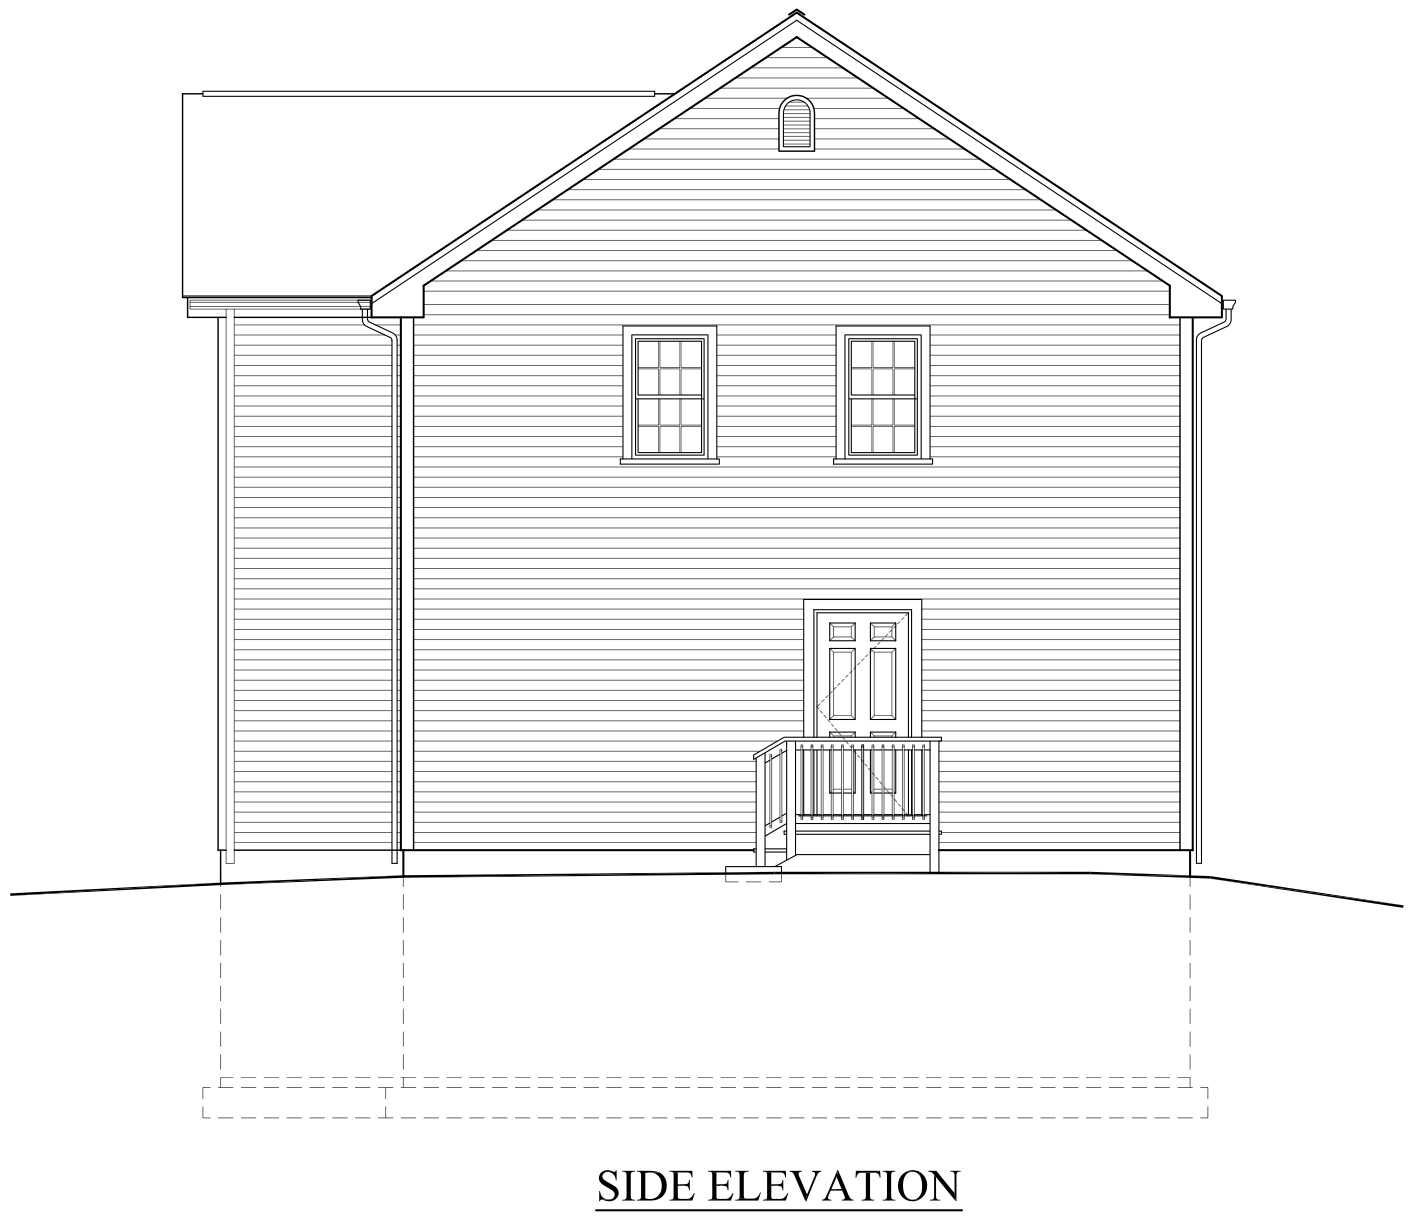 side-elevation-large